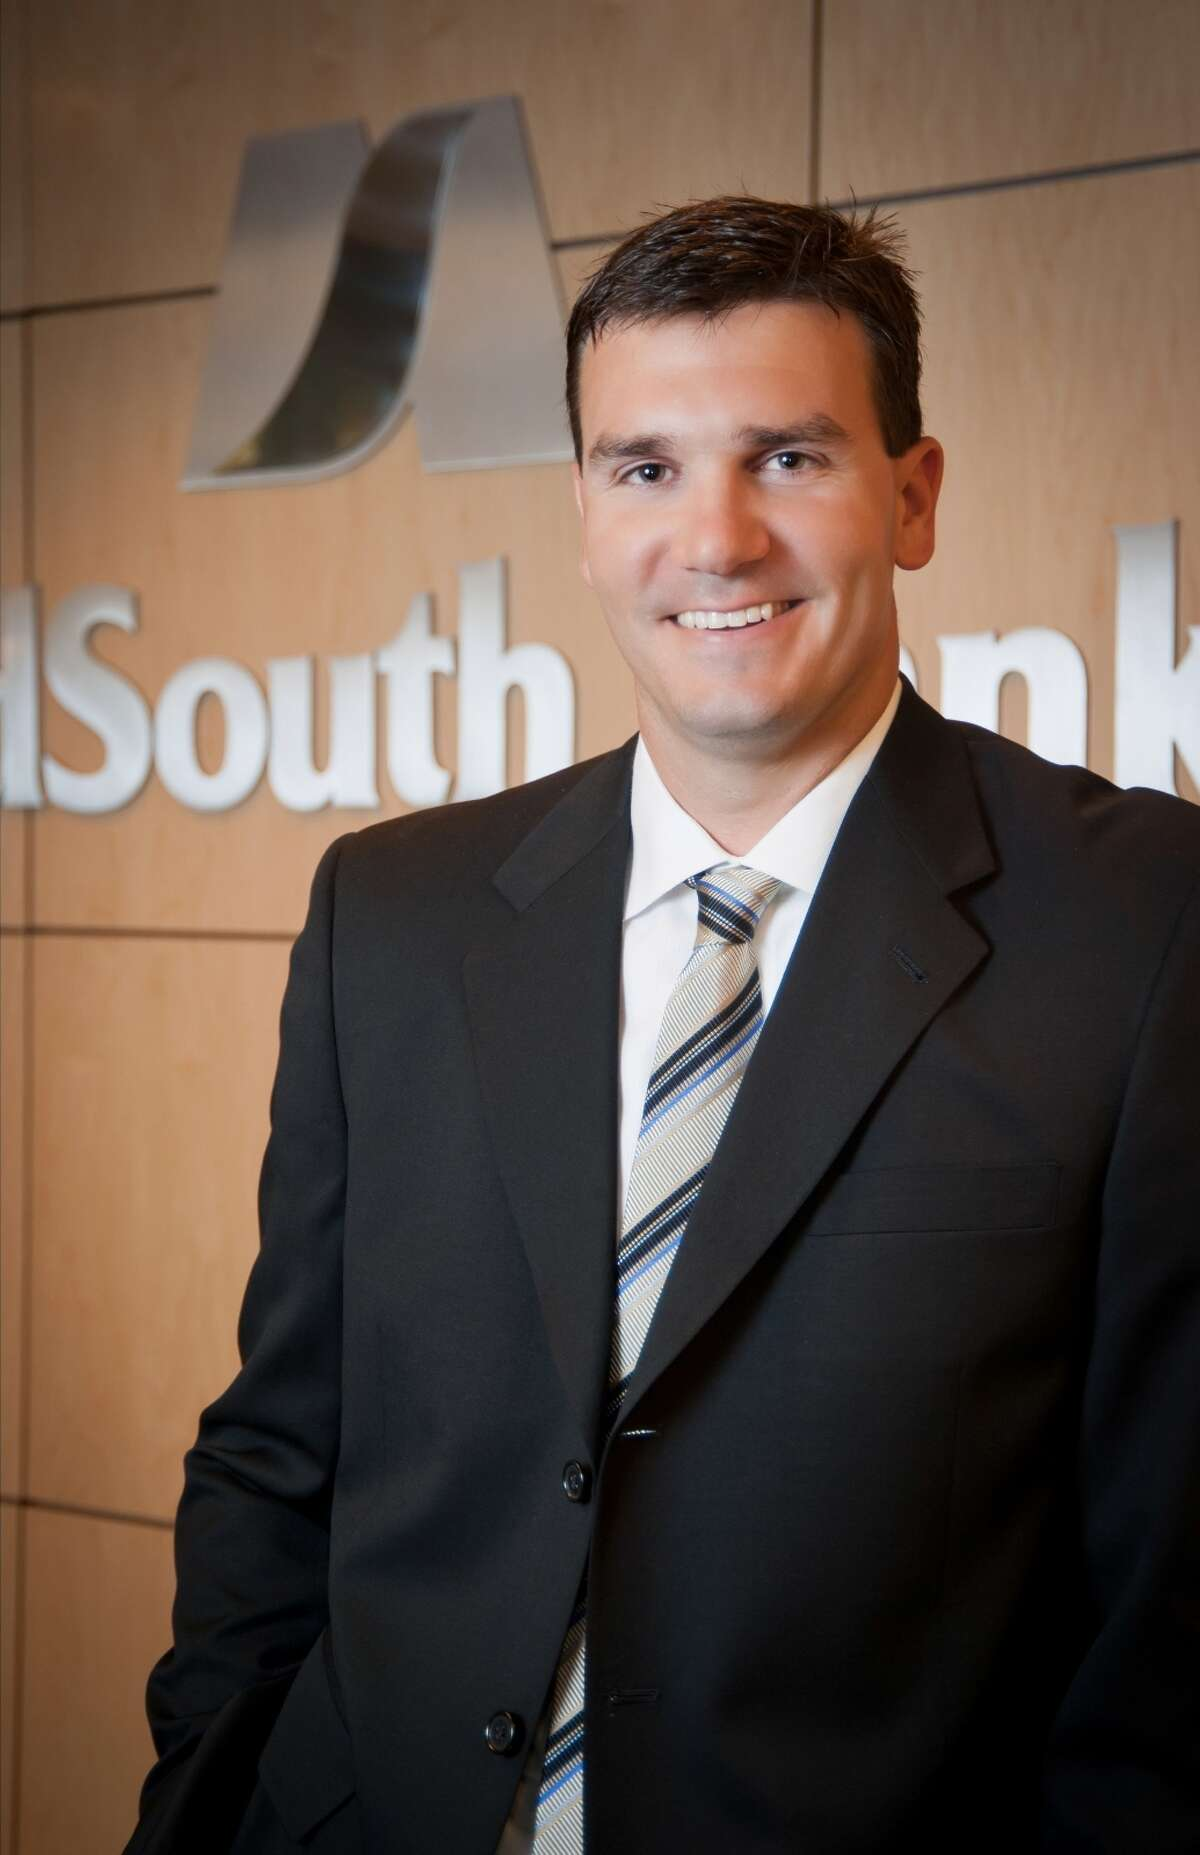 Former pro NFL quarterback Jake Delhomme will serve as chairman of the board of Midsouth Bank.